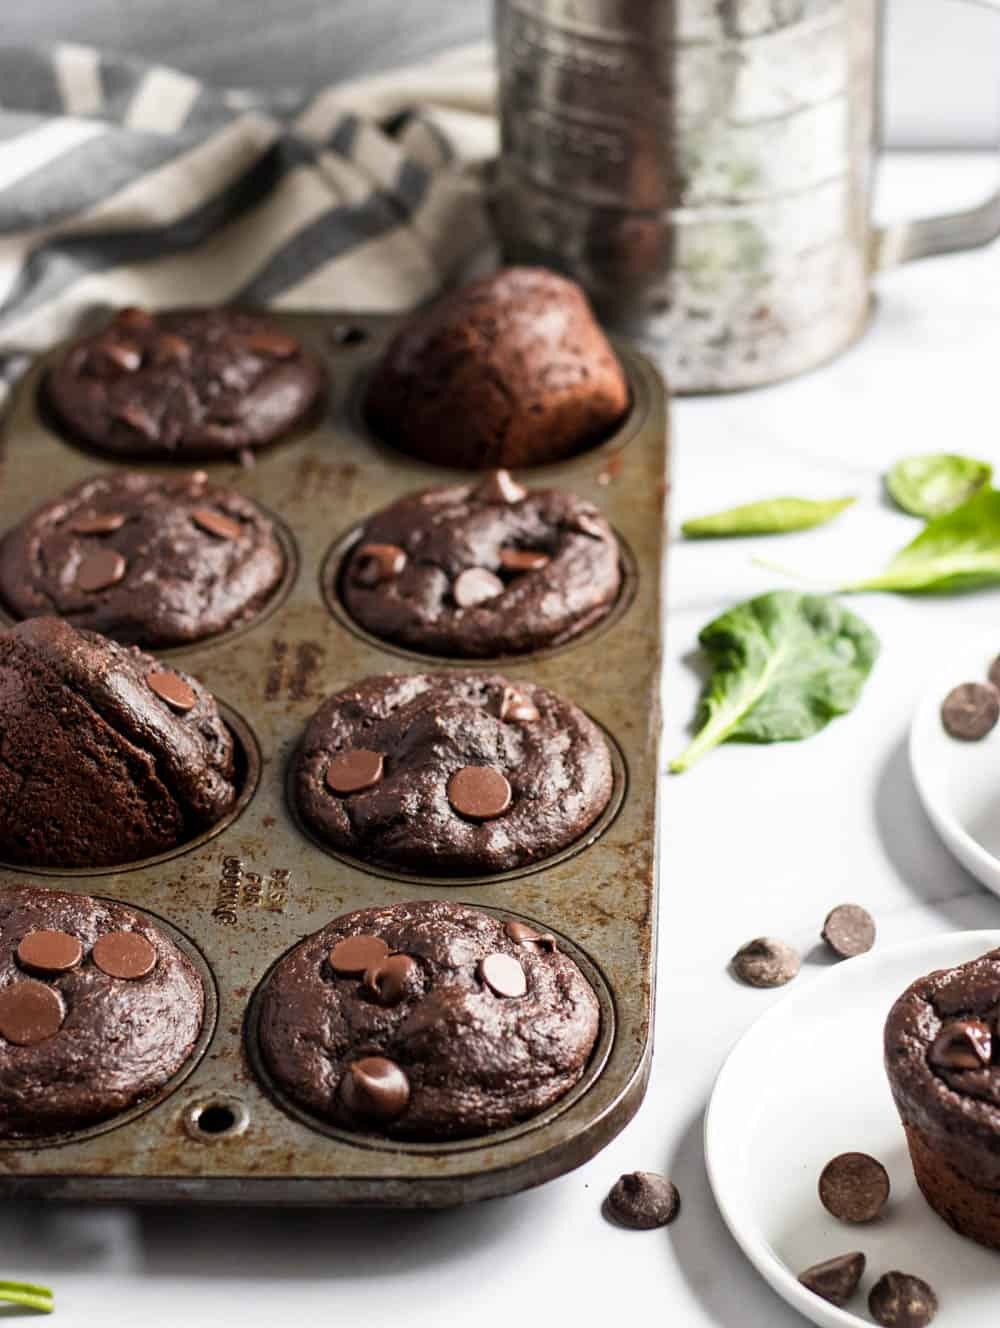 Muffins in muffin tin with flour sifter, spinach and chocolate chips.